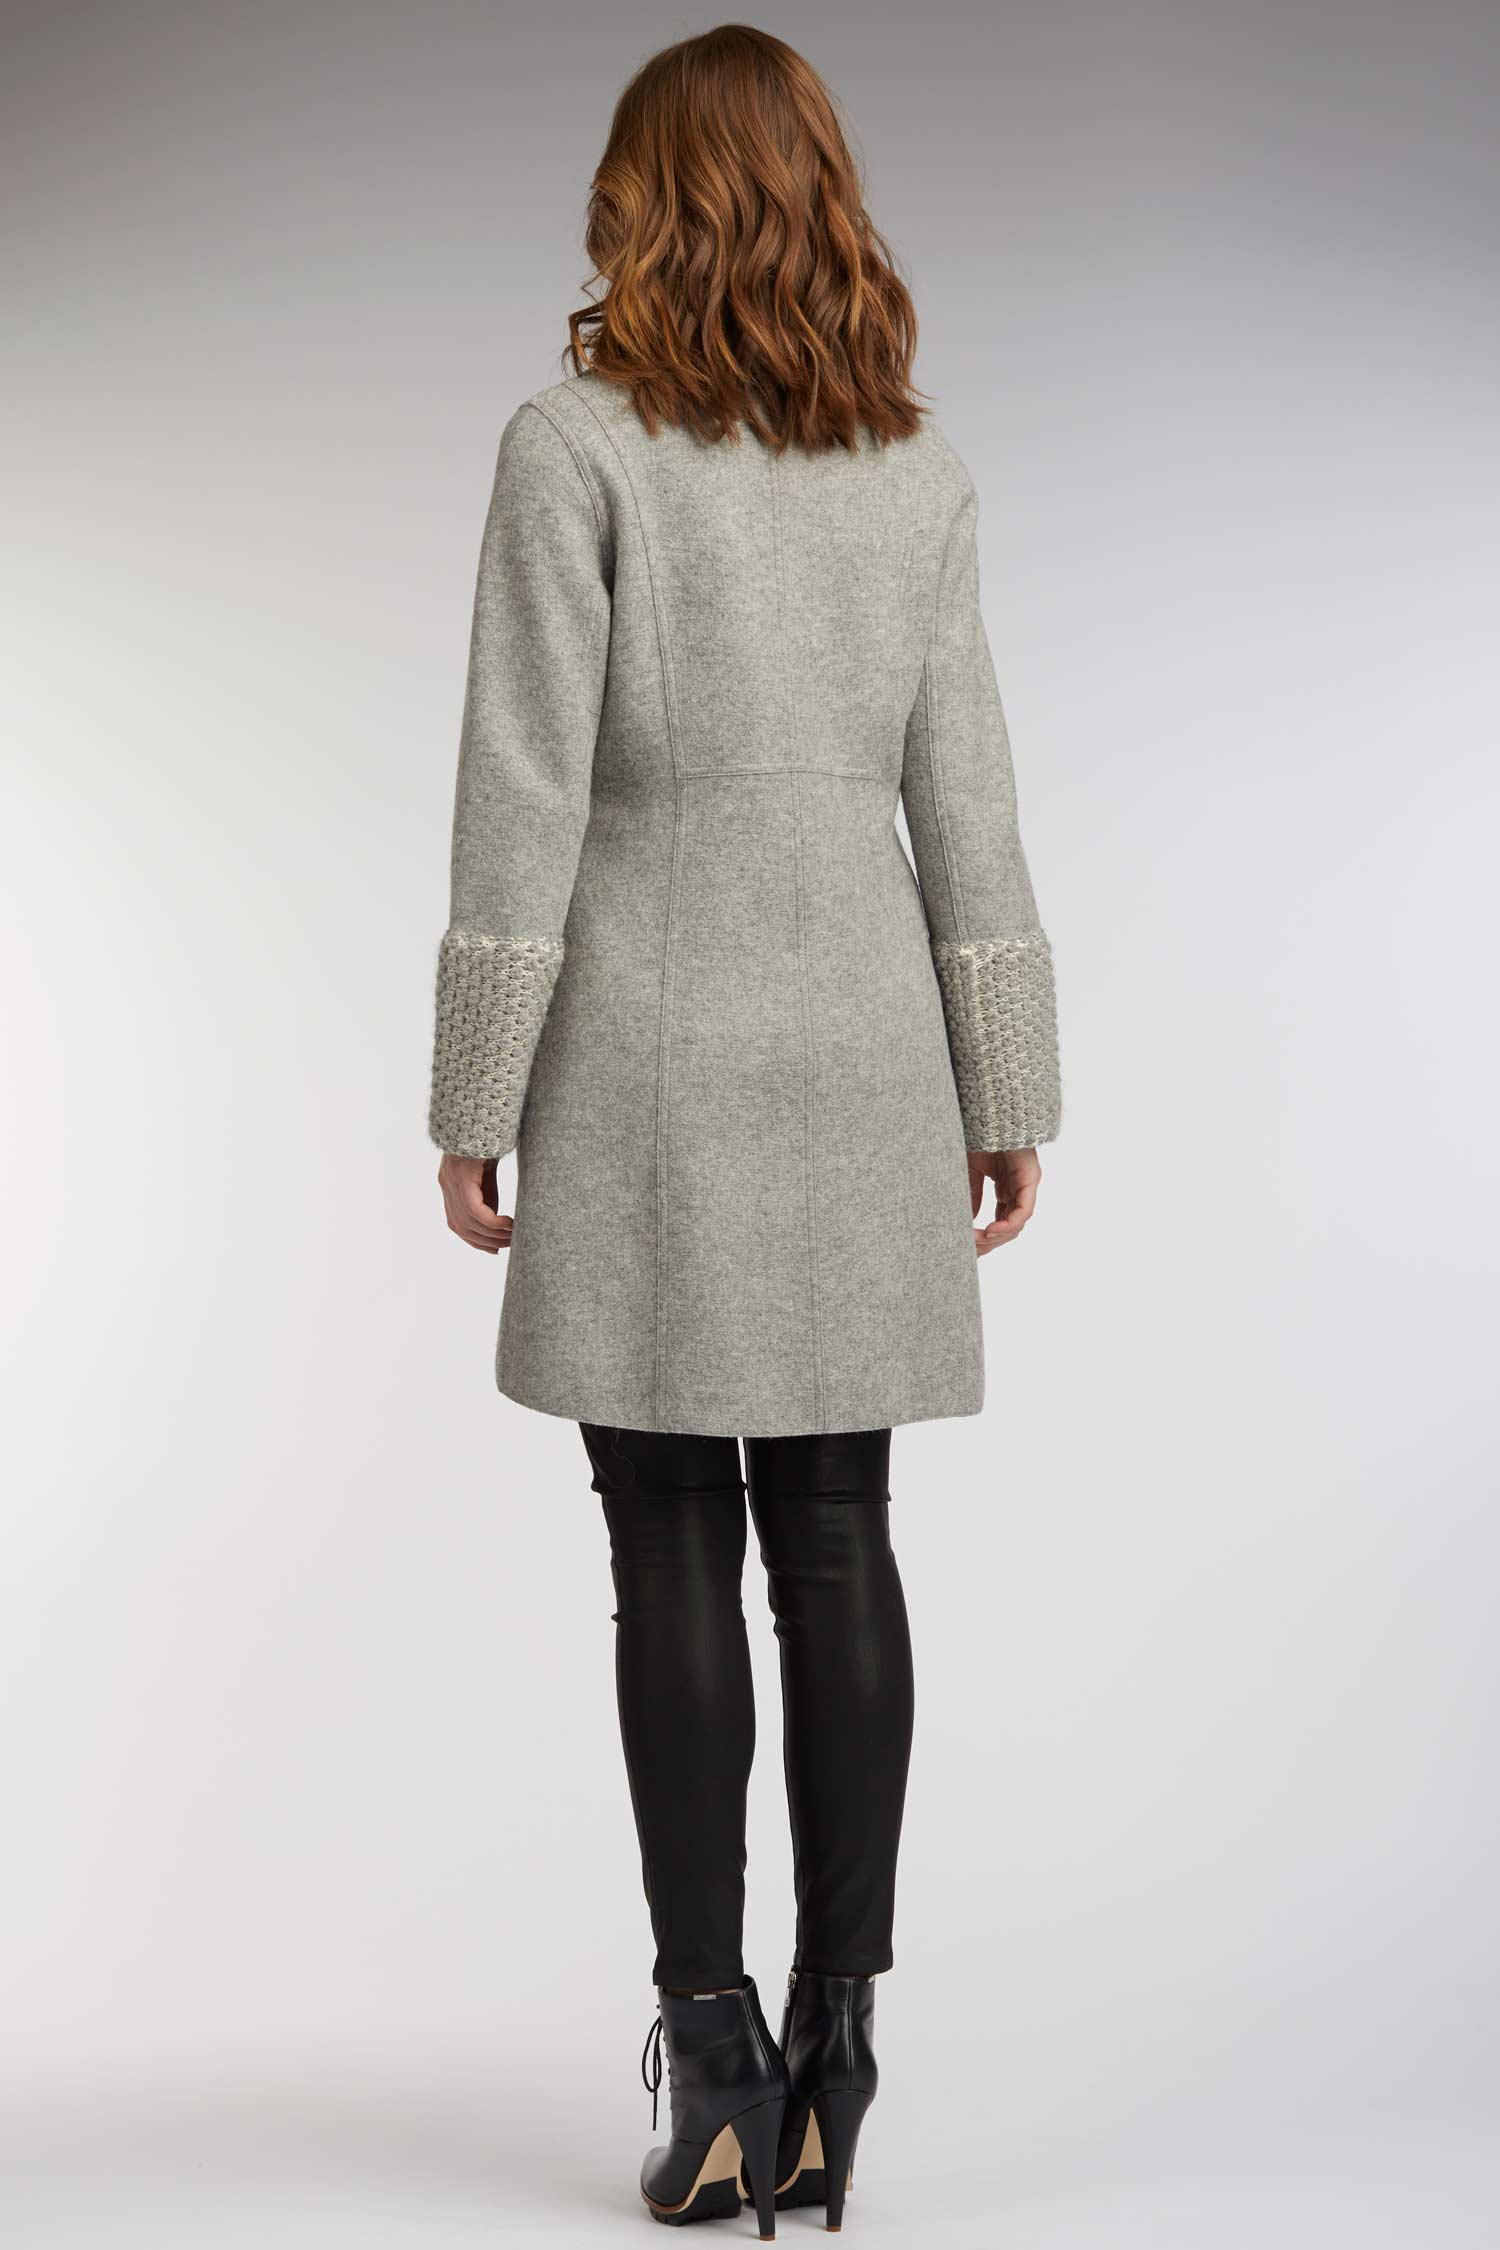 Womens Alpaca Winter Coat in Gray | Sustainable Fashion